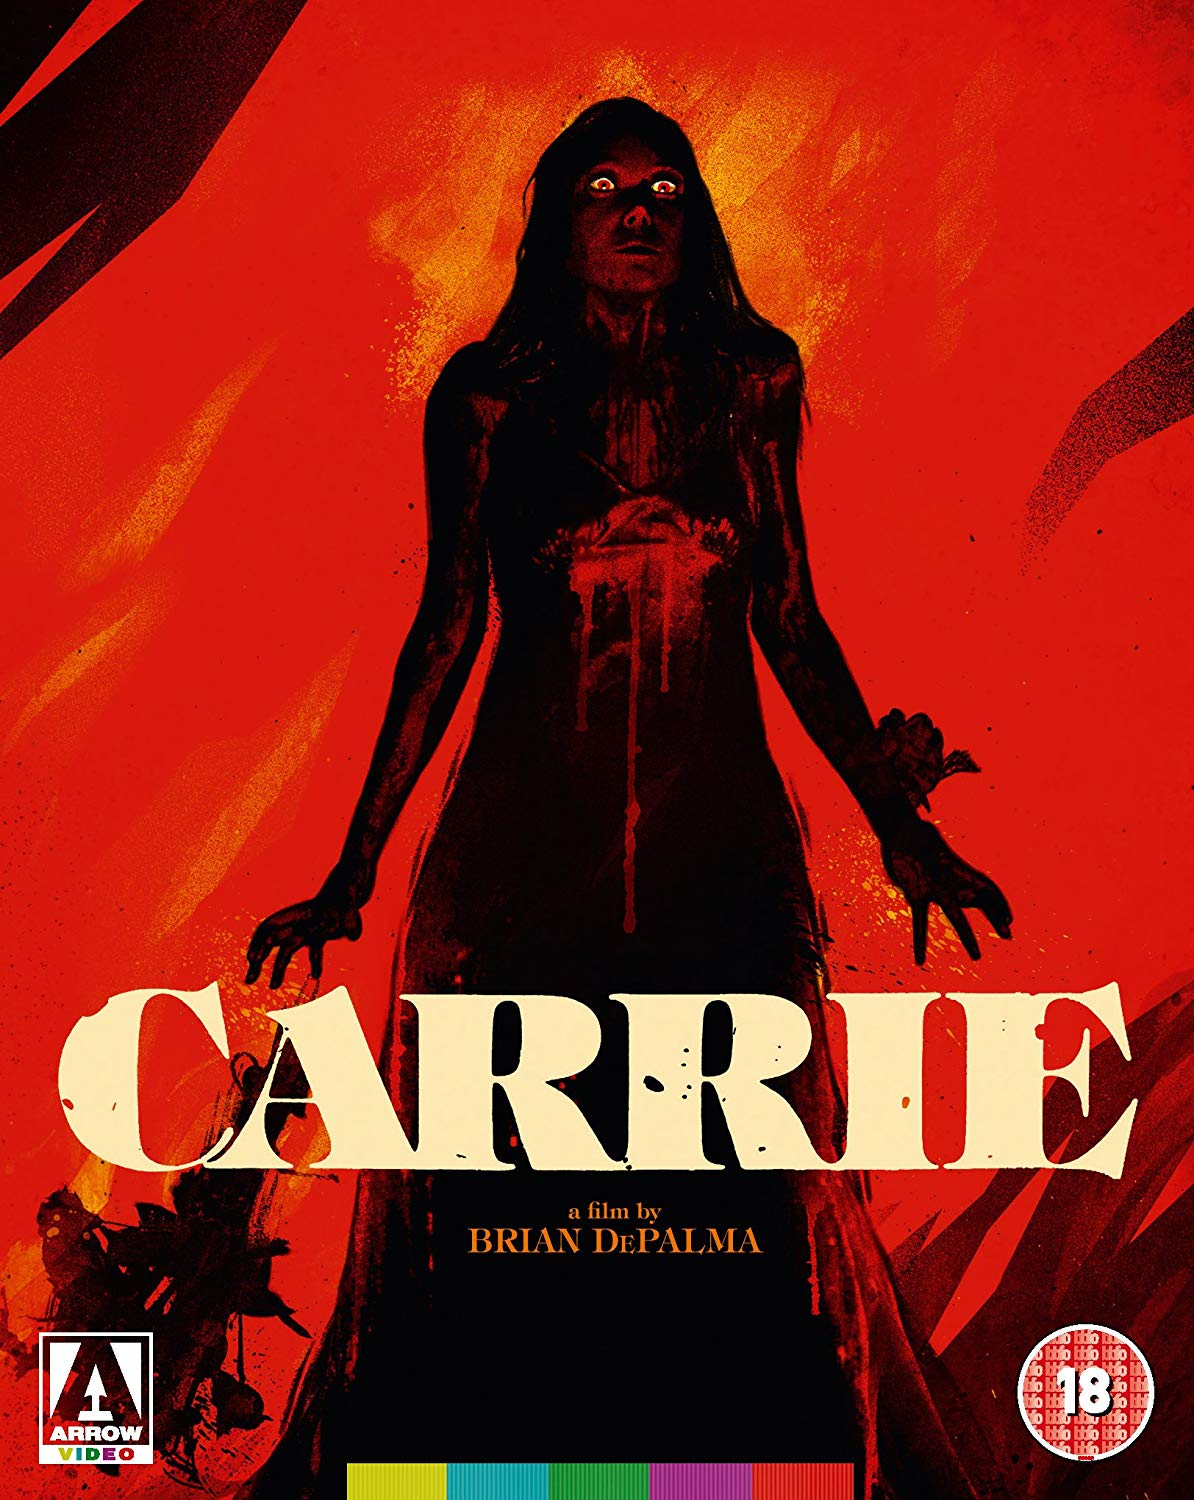 Buy Carrie (Limited Edition Blu-ray)